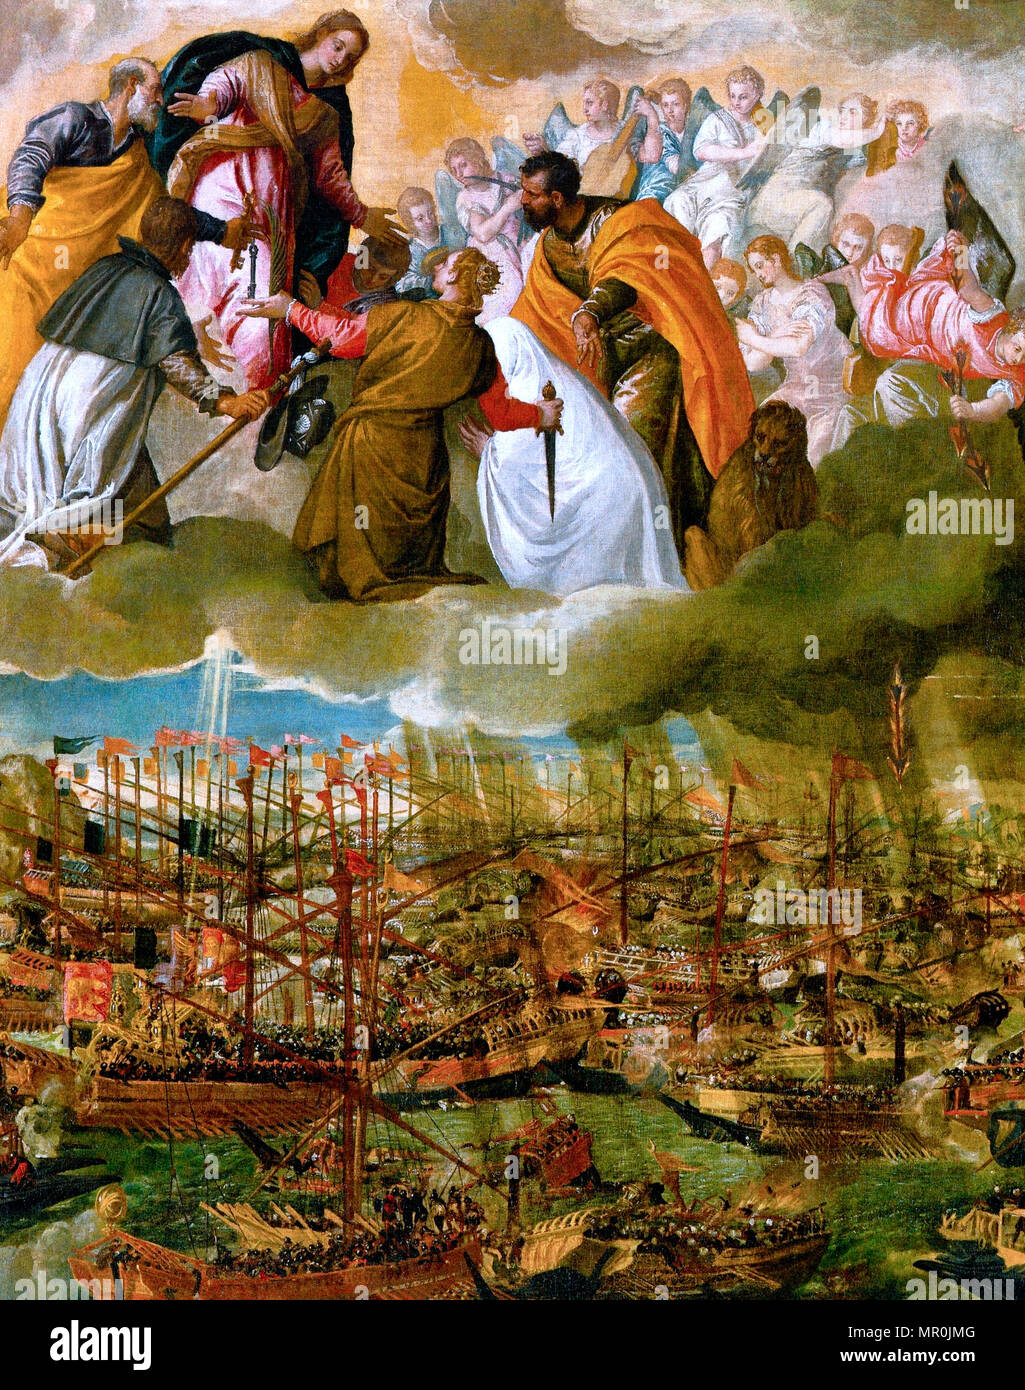 The Battle of Lepanto - Paolo Veronese, 1571 - Stock Image